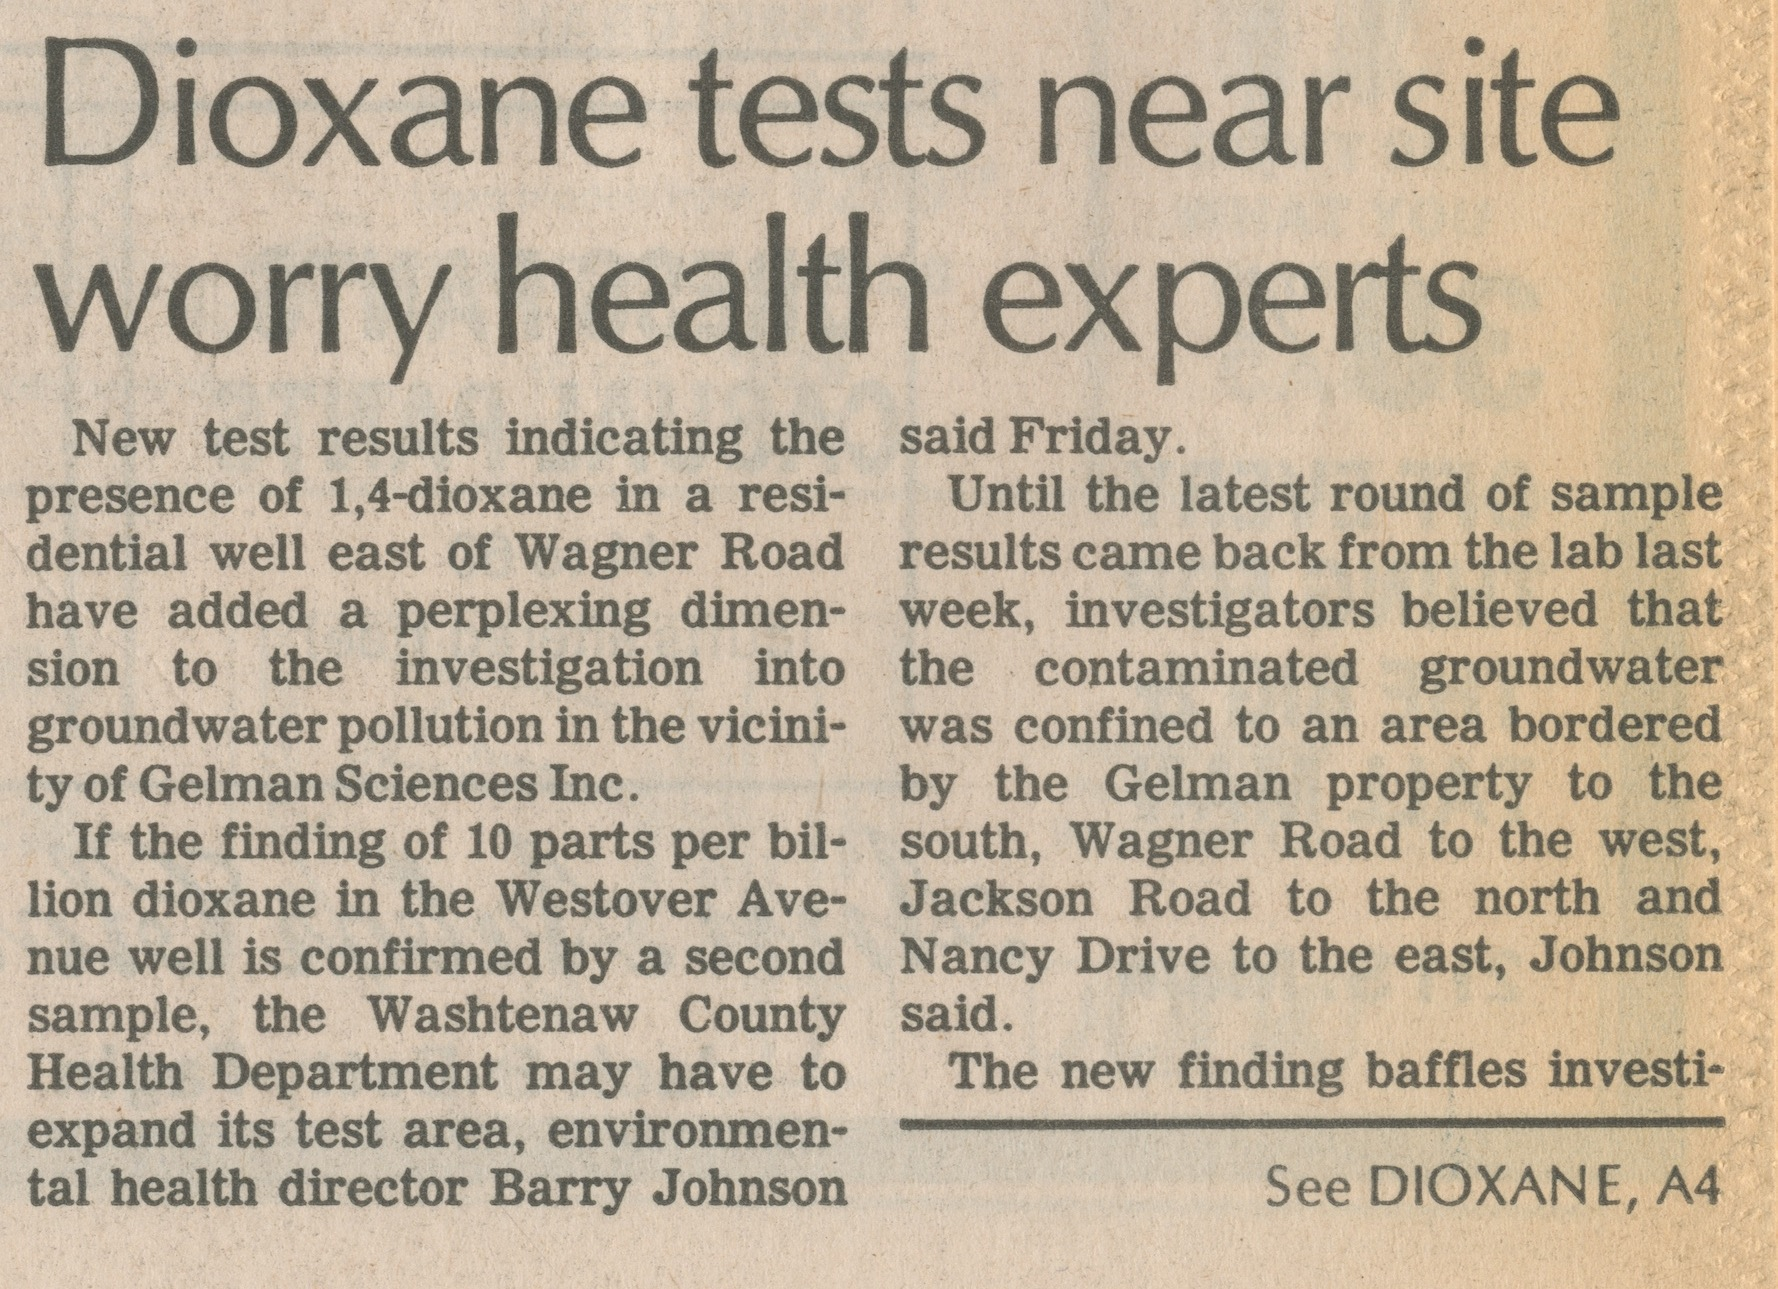 Dioxane Tests Near Site Worry Health Experts image